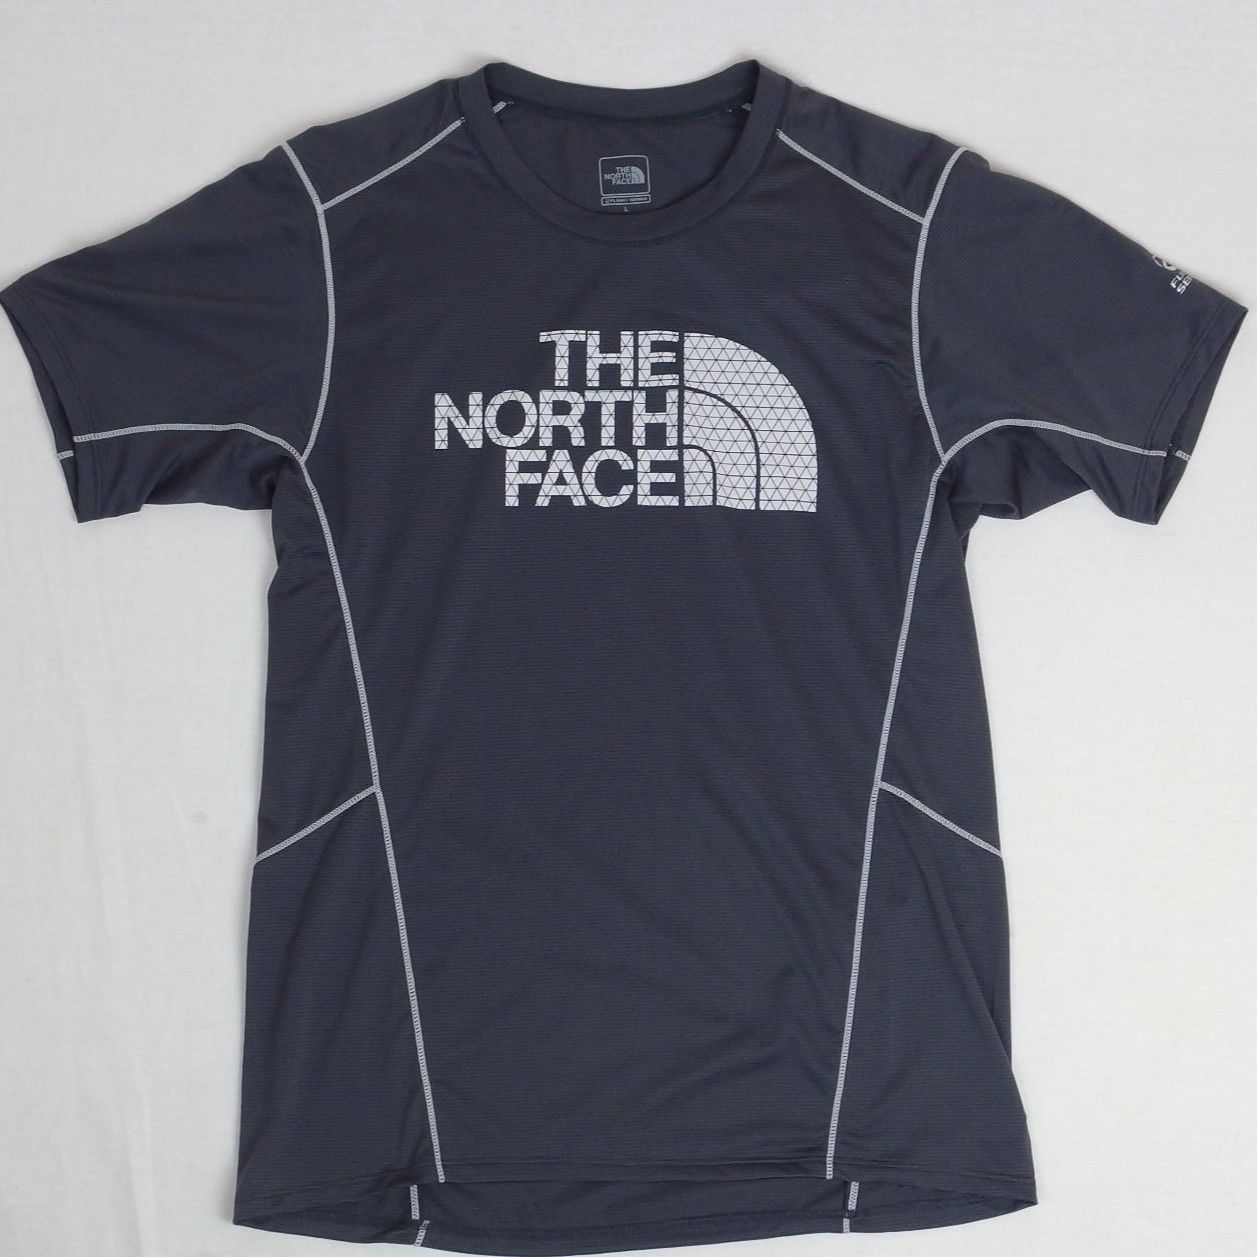 THE NORTH FACE / BETTER THAN NAKED CREW